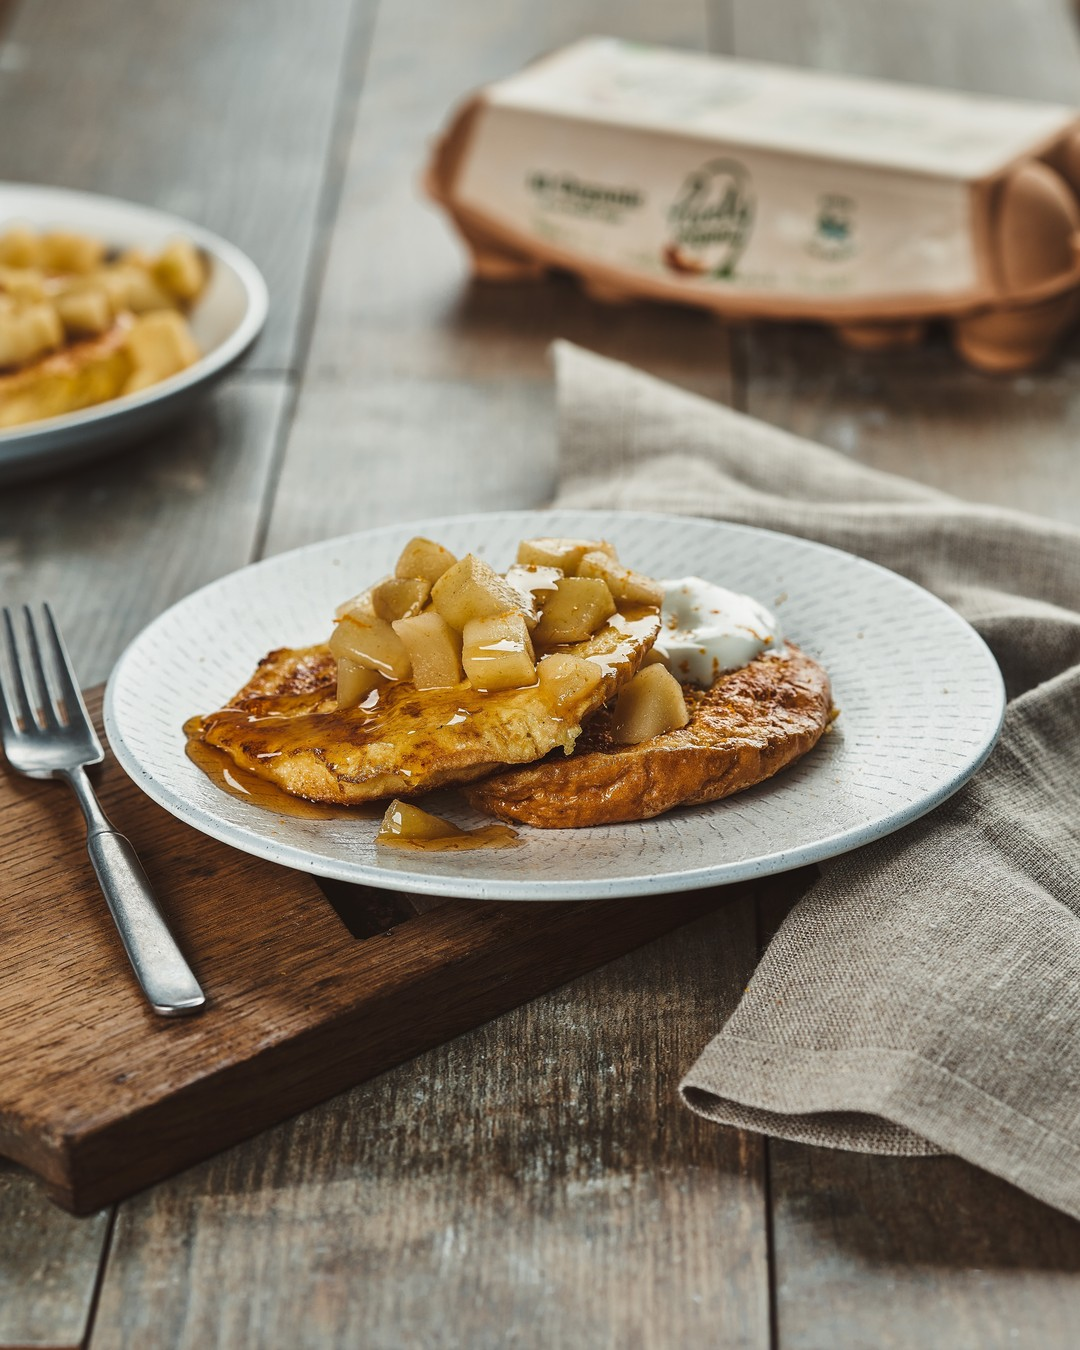 Add a little spice to your weekend breakfast with our spiced apple French toast recipe. (link in bio)